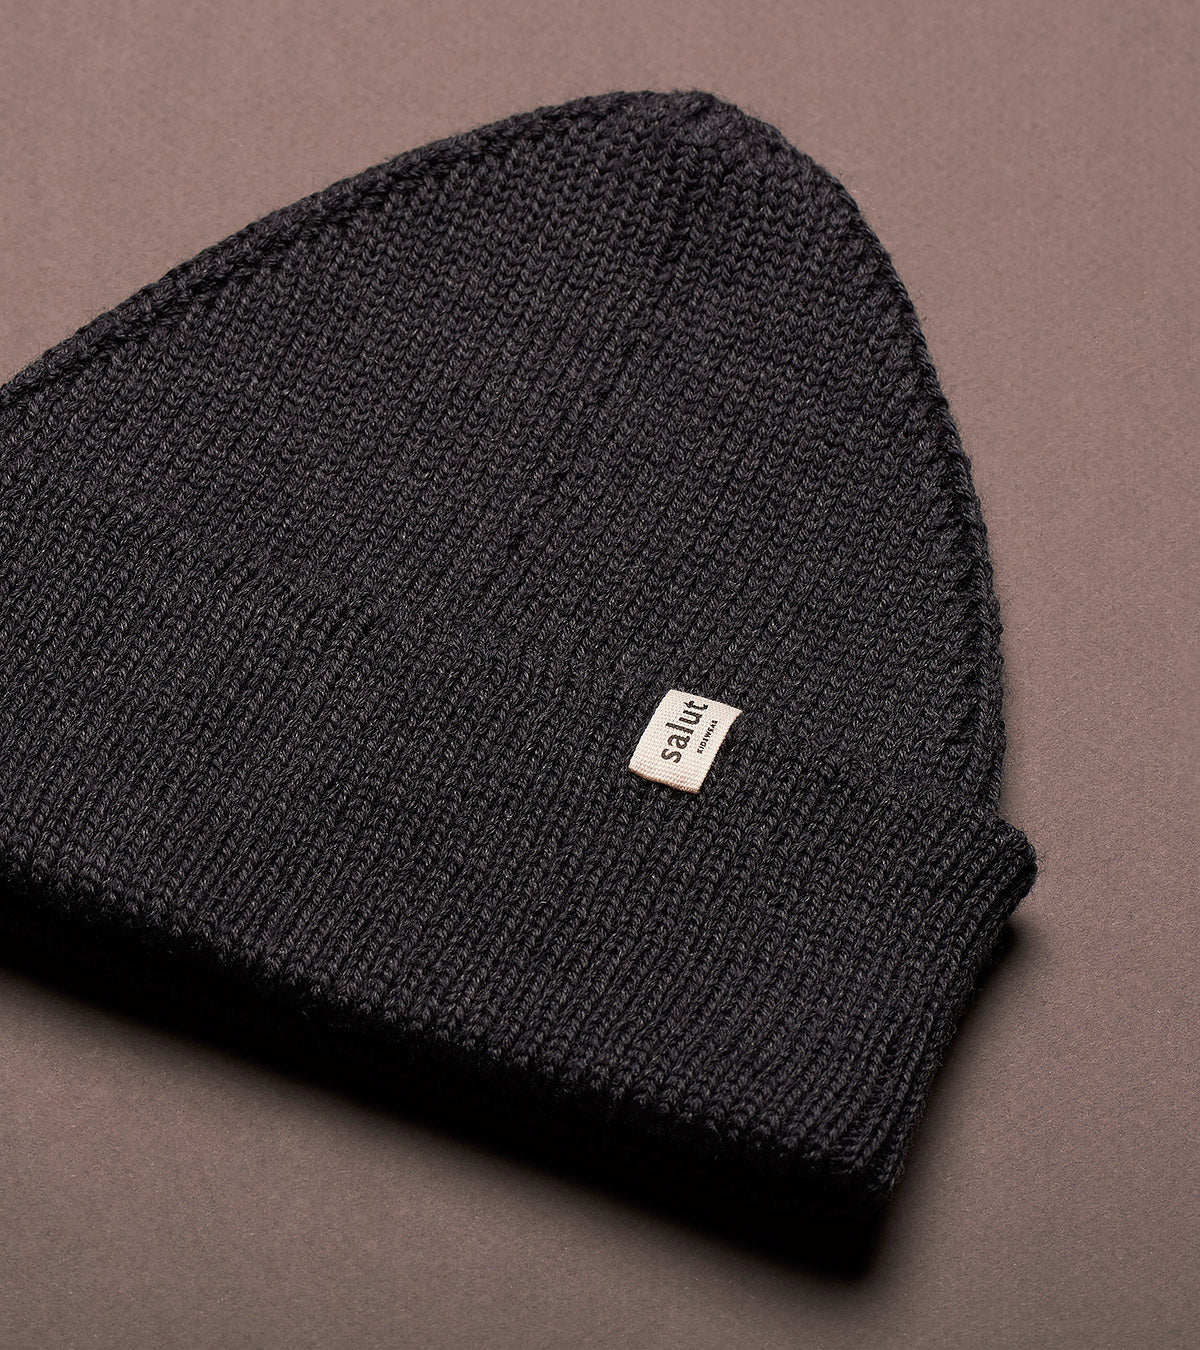 Merino Beanie Charcoal, made in Switzerland